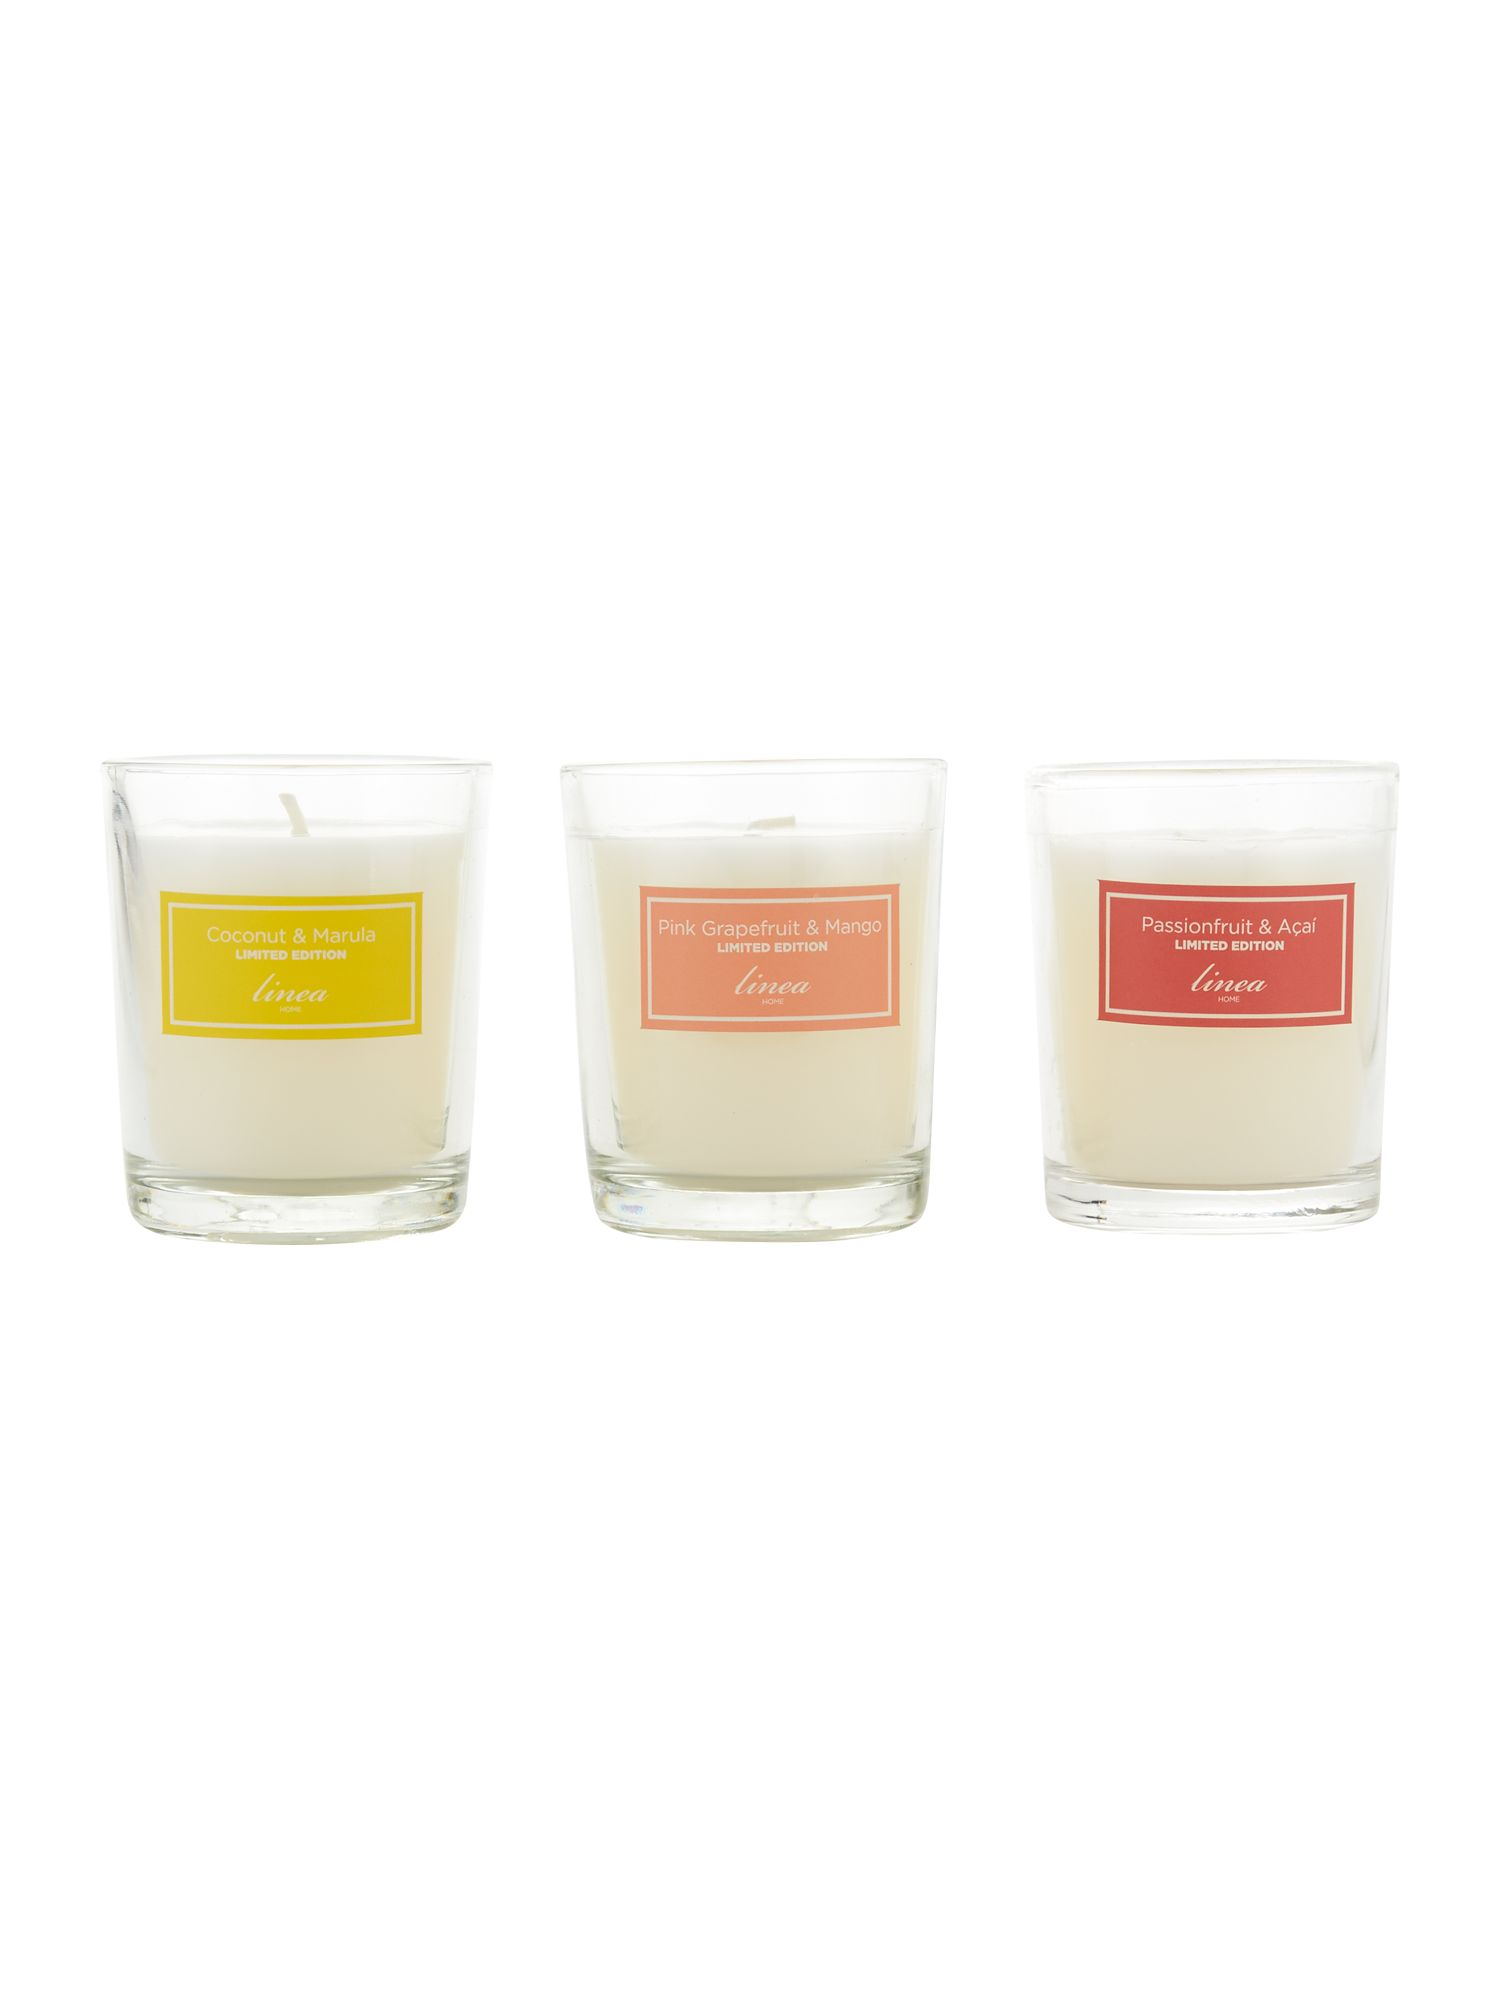 Limited edition set of 3 votives